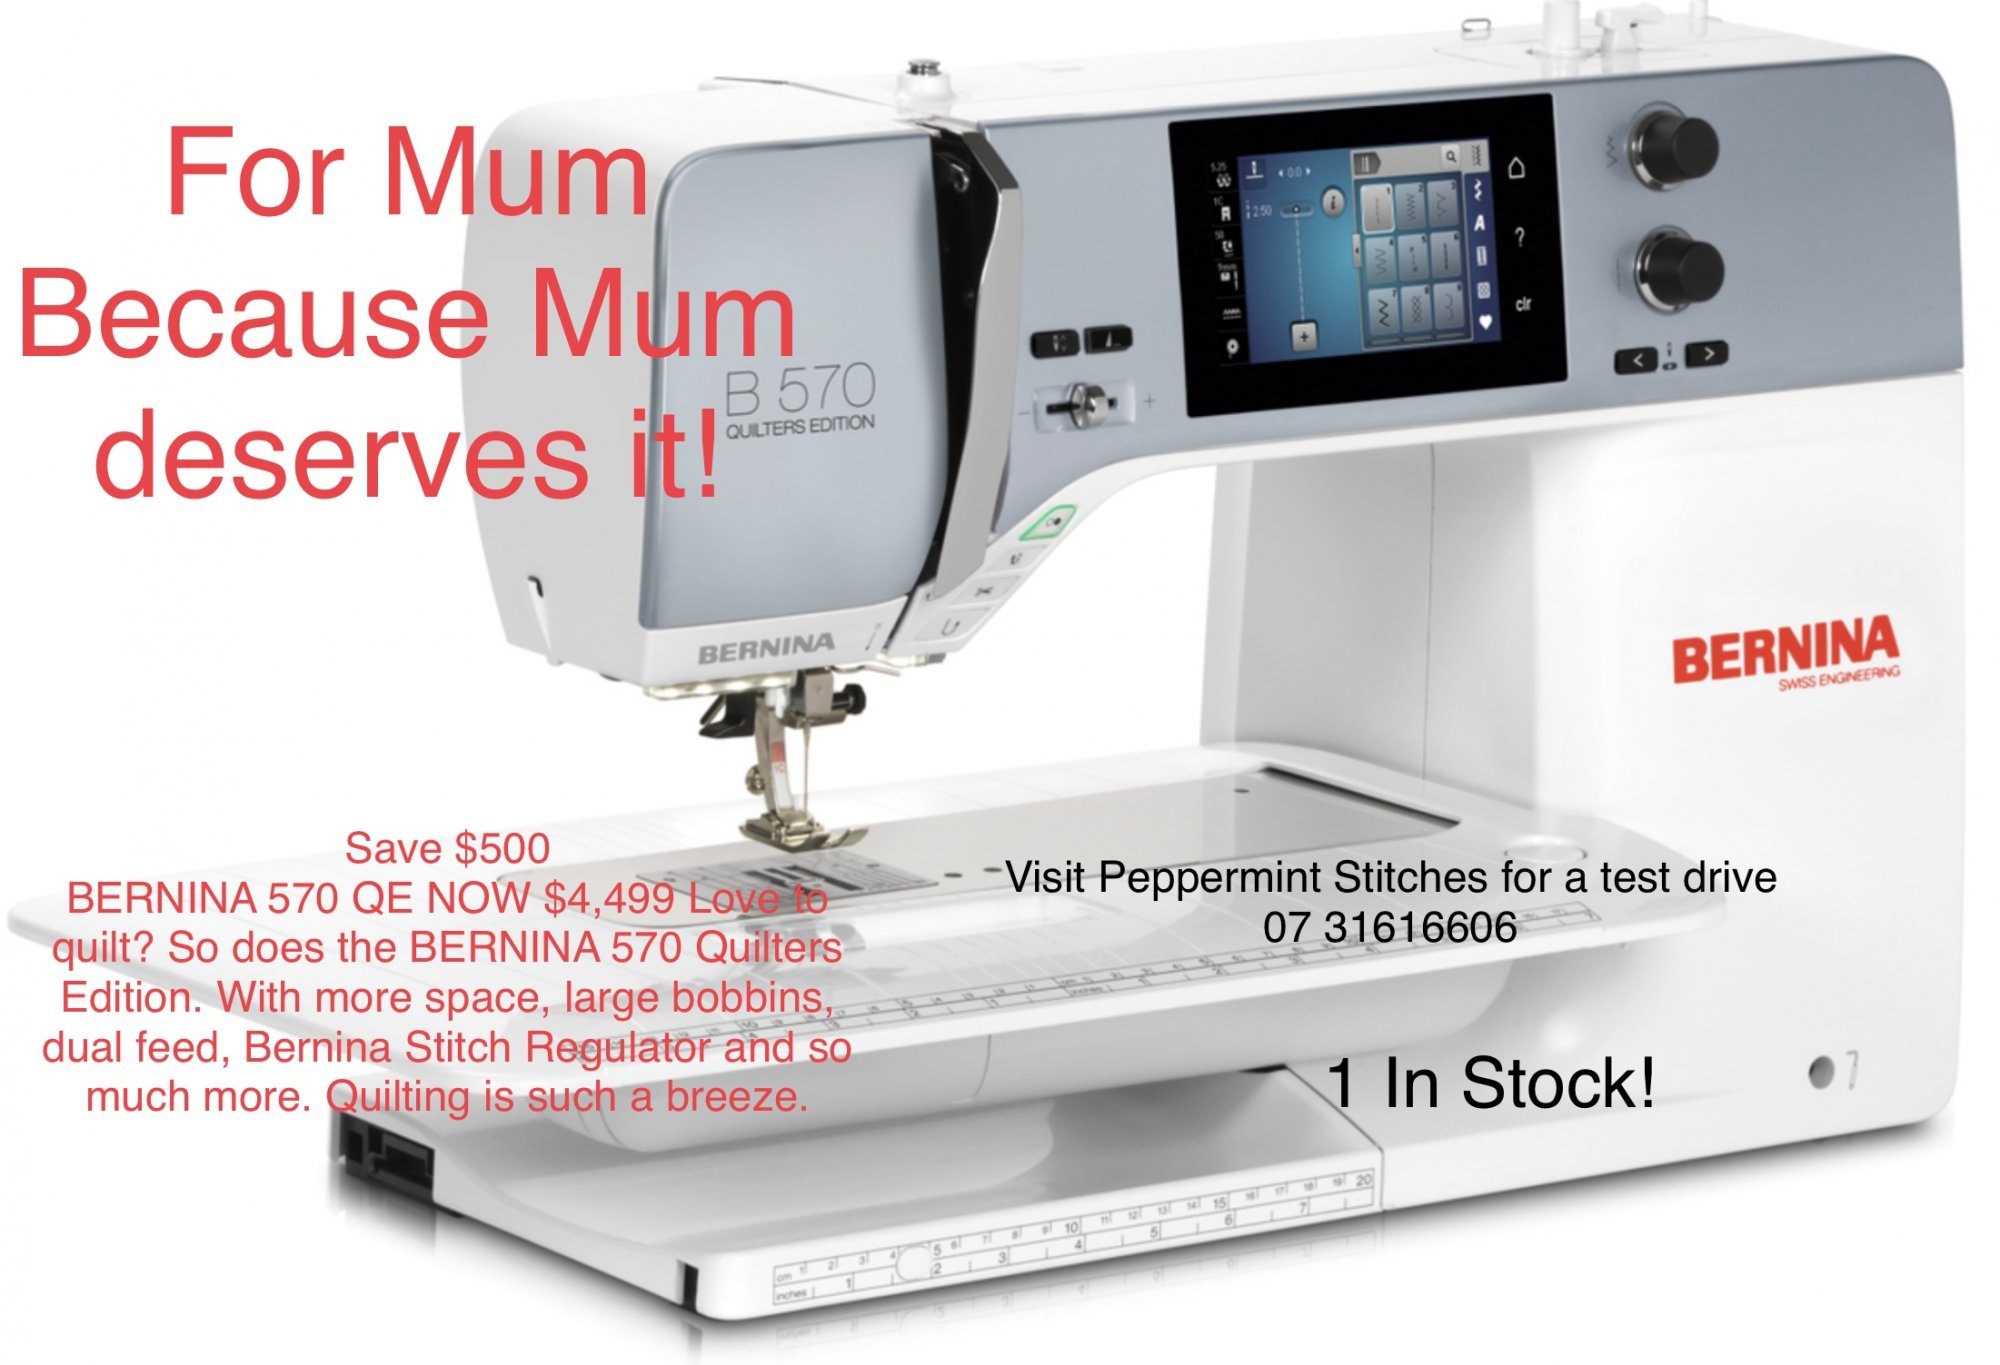 BERNINA 570QE - The versatile one with the wide range of functions. 1 INSTOCK!